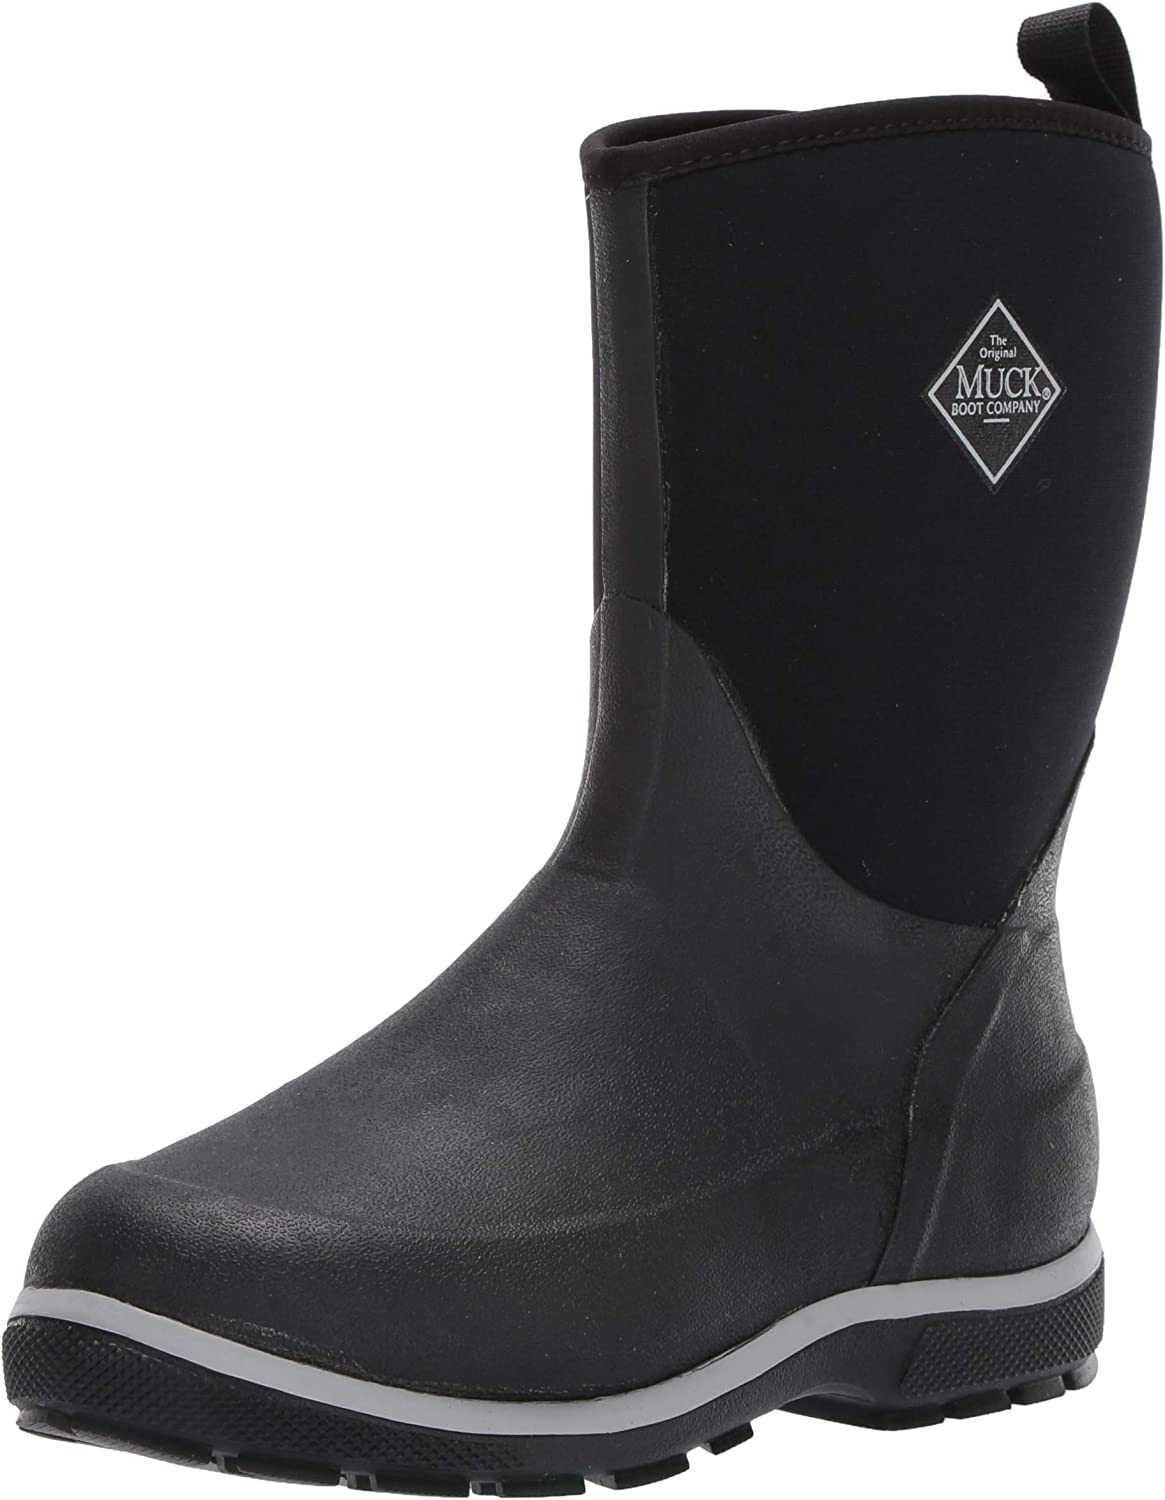 Muck Challenge the lowest price of Japan ☆ Boot Indianapolis Mall Unisex-Child Kid's Element Rain